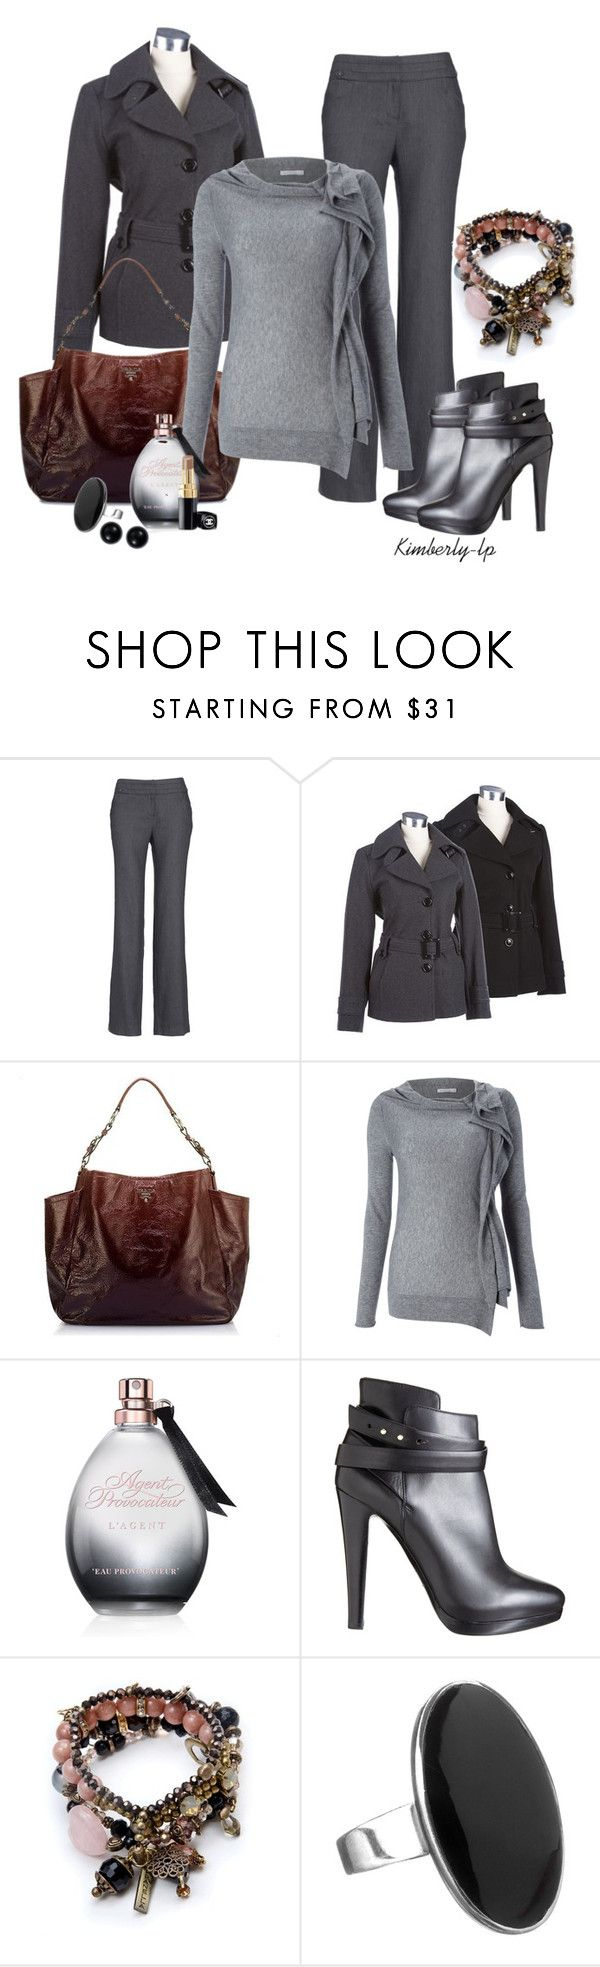 """""""Grey Matters"""" by kimberly-lp ❤ liked on Polyvore featuring Monsoon, Prada, Marella, Agent Provocateur, Giorgio Armani, Simply Silver, Blue Nile and Chanel"""